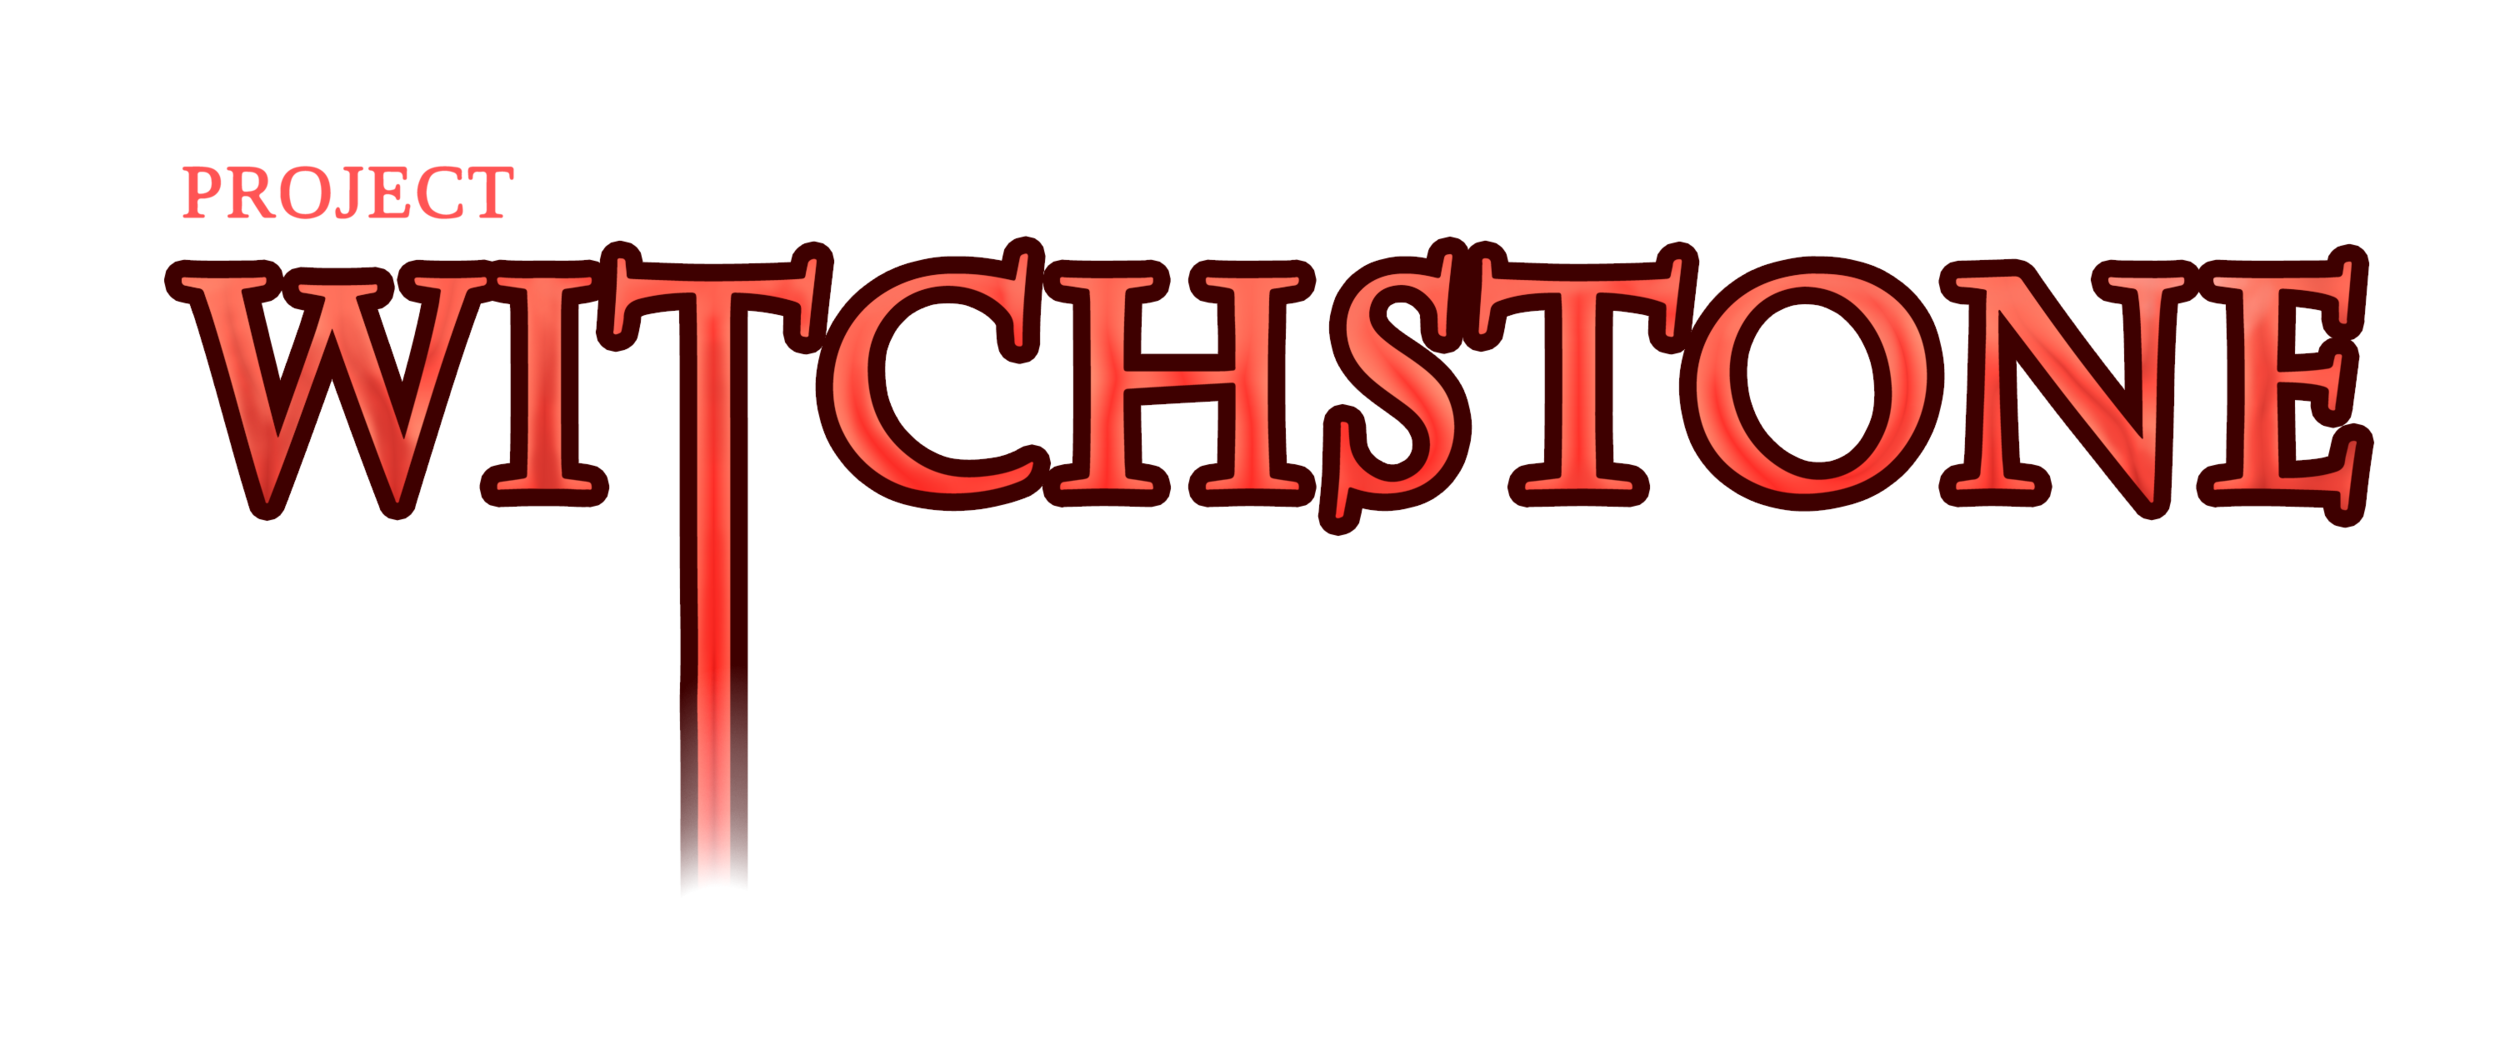 templogo_witchstone_01.png